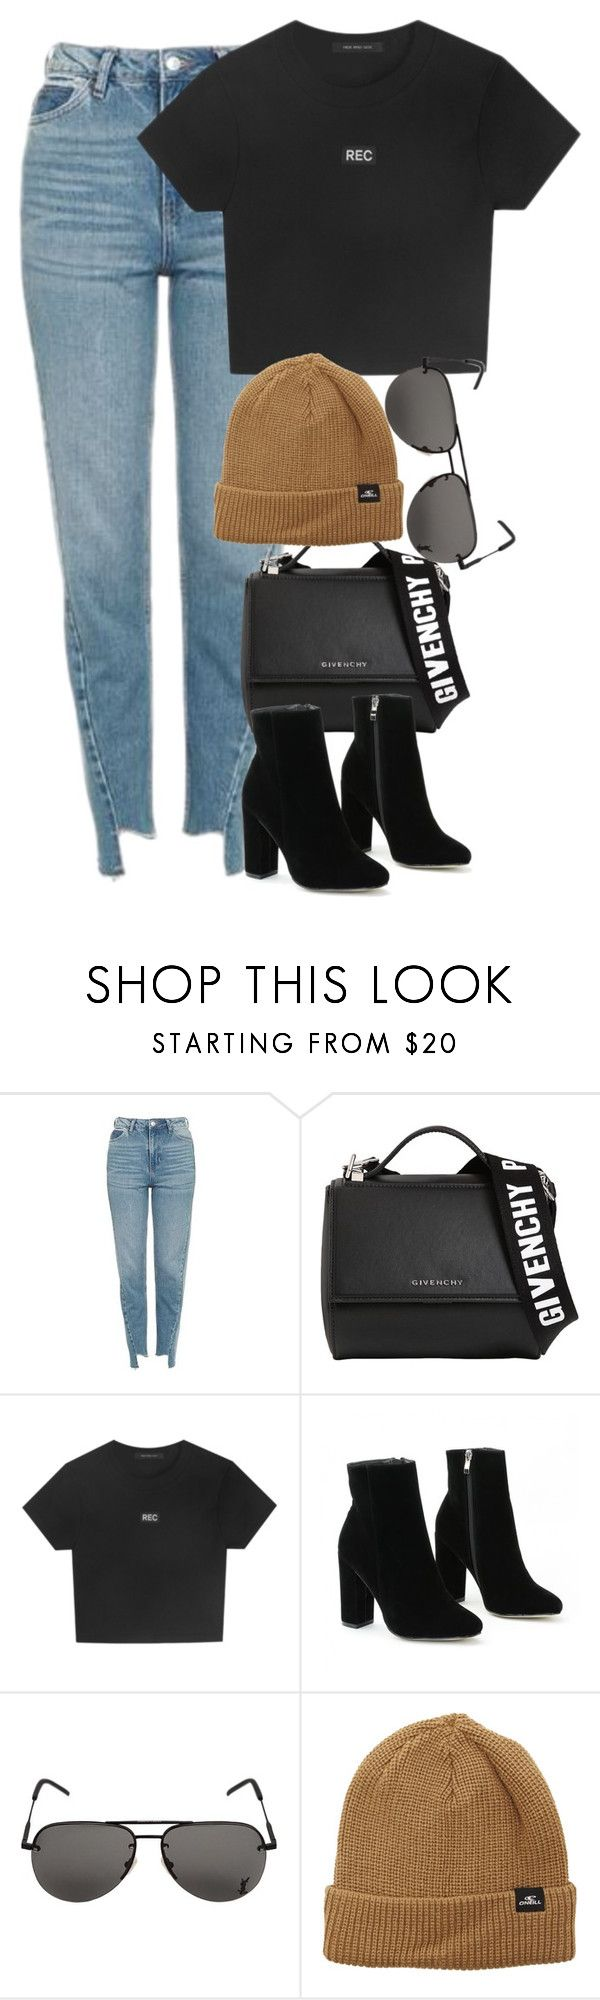 """""""Sem título #1407"""" by oh-its-anna ❤ liked on Polyvore featuring Topshop, Givenchy, Yves Saint Laurent and O'Neill"""